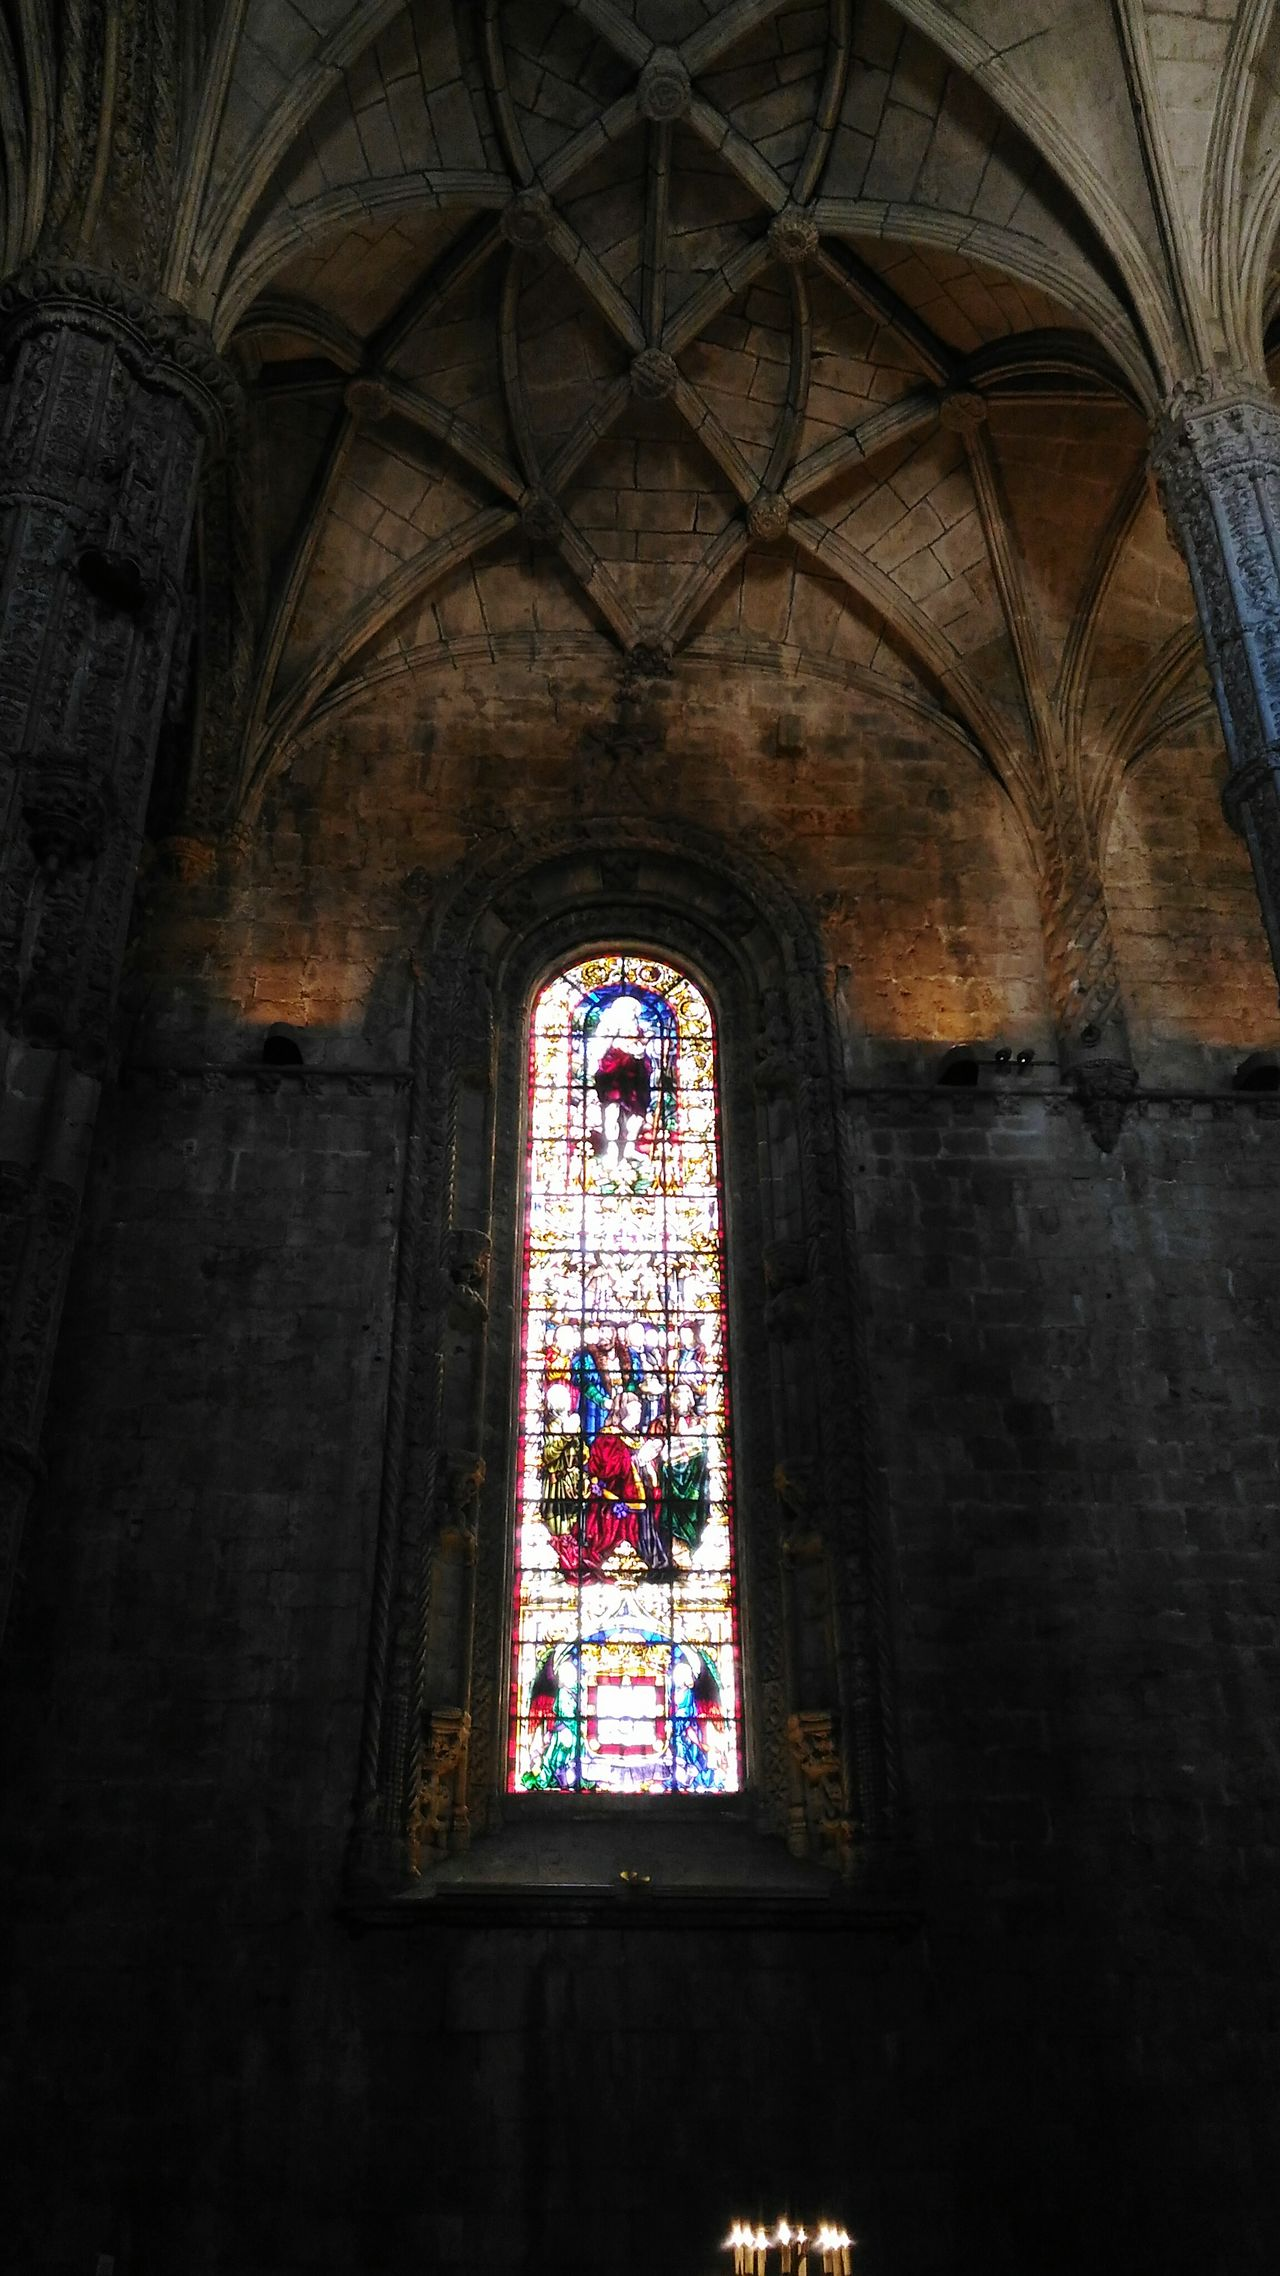 Religion Place Of Worship Spirituality Stained Glass Low Angle View Window Built Structure No People Architecture Rose Window Indoors  Day Lisboa Portugal Old Monastery Mosteiro Dos Jerónimos Place Of Worship Architectural Column Architecture